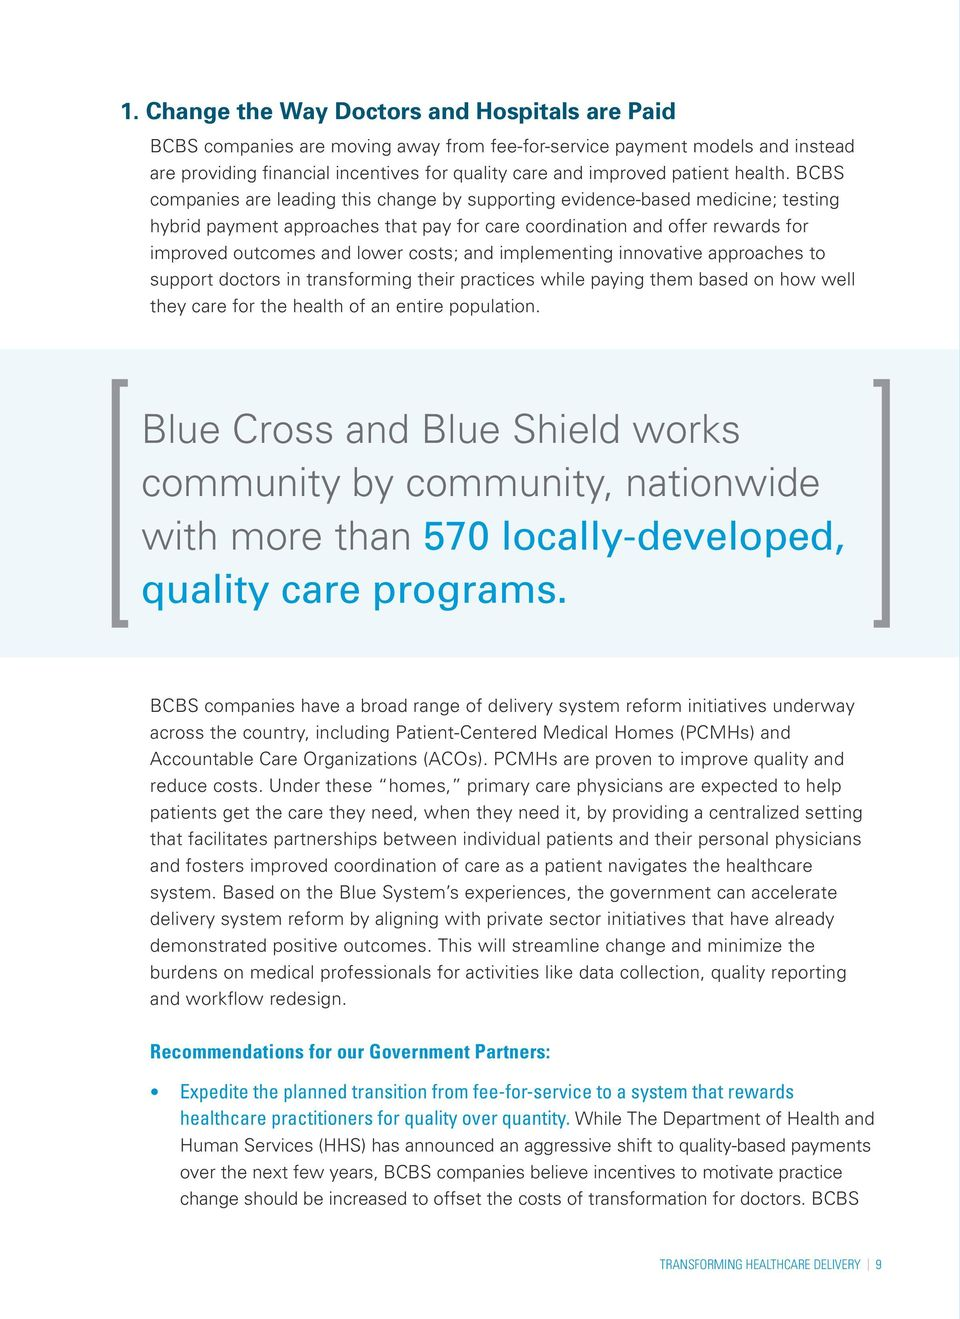 BCBS companies are leading this change by supporting evidence-based medicine; testing hybrid payment approaches that pay for care coordination and offer rewards for improved outcomes and lower costs;